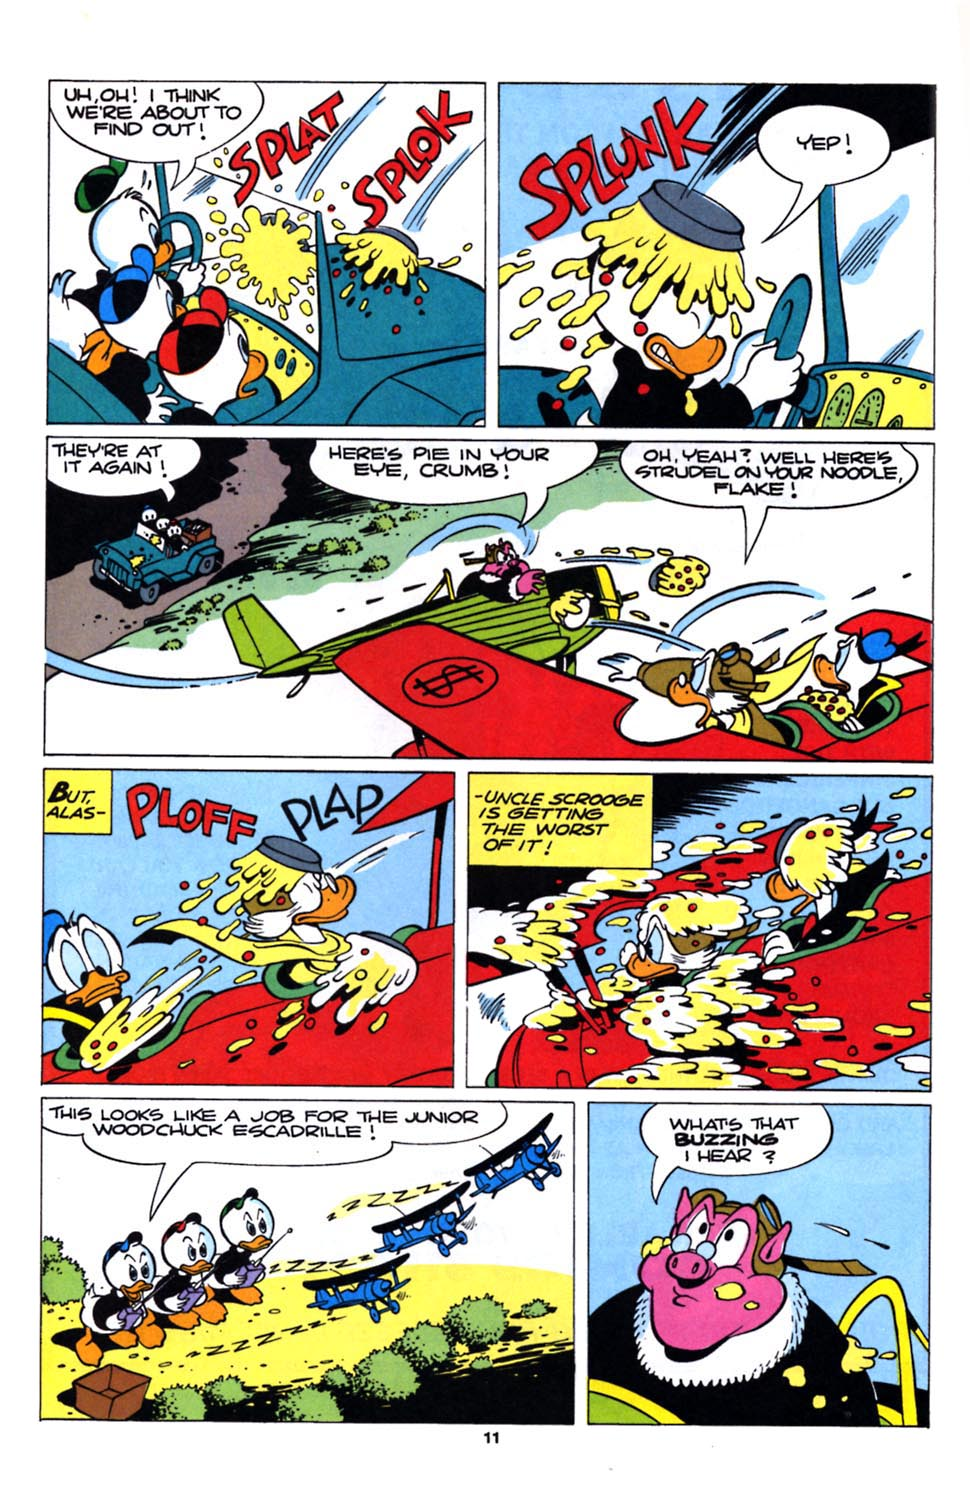 inefree.com/uncle-scrooge #162 - English 13